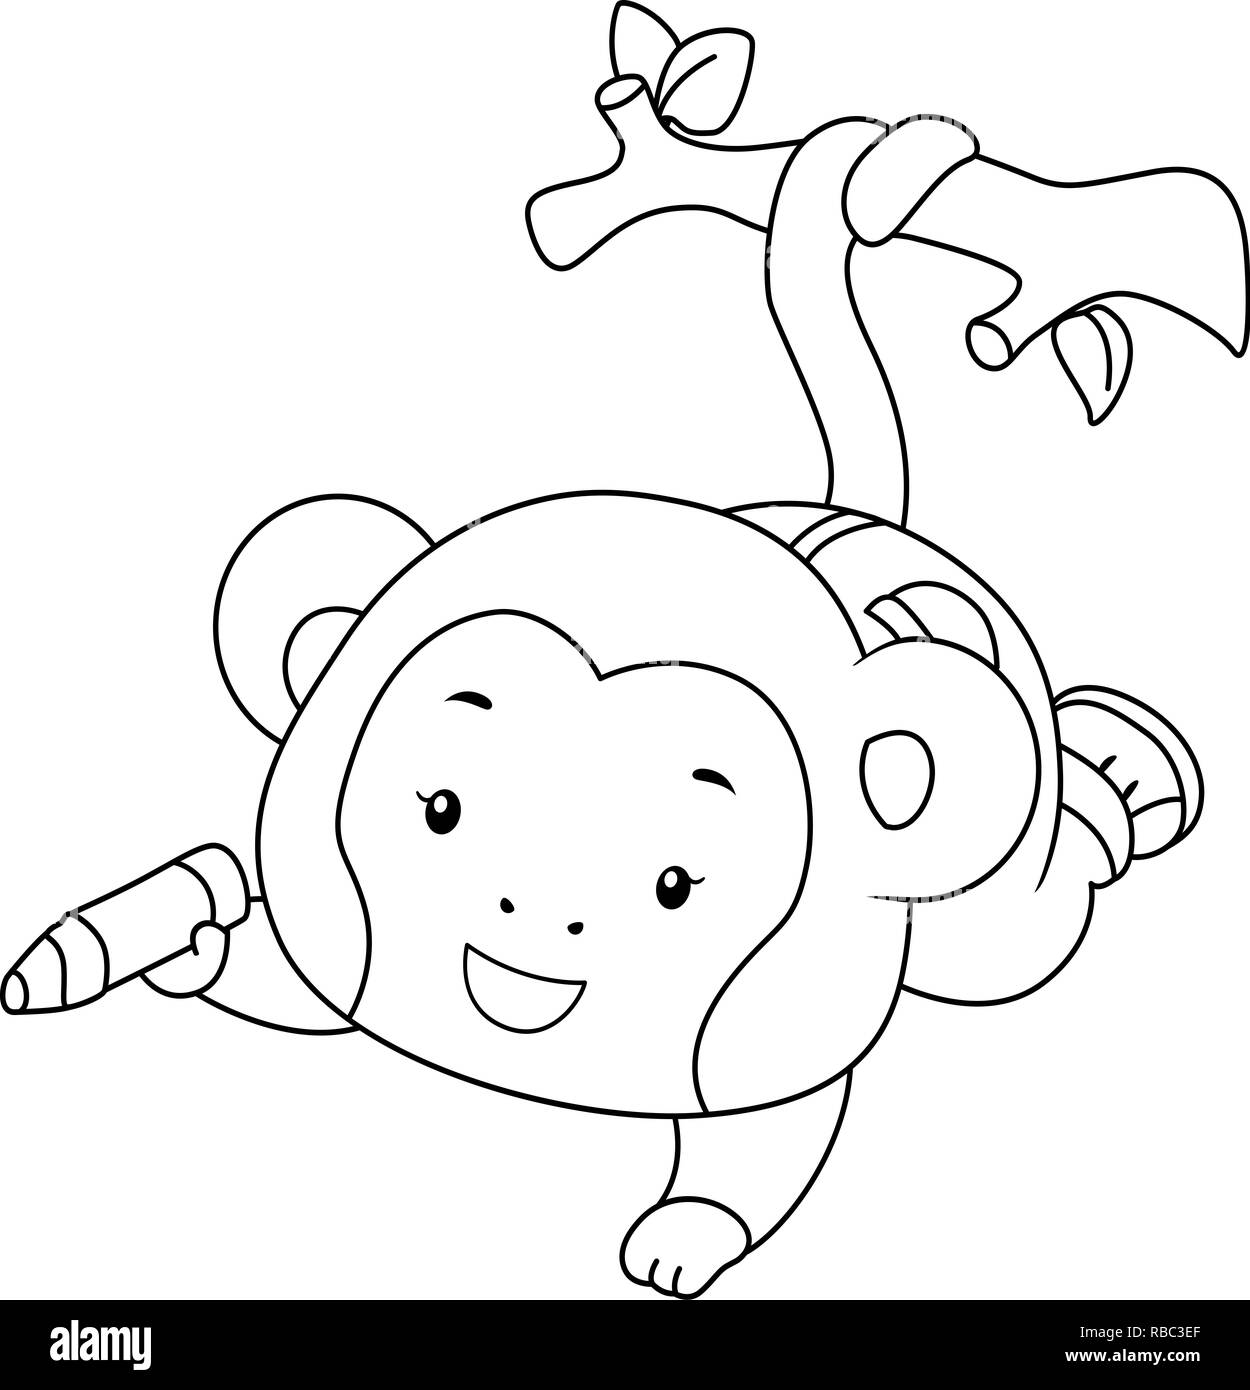 Coloring Illustration of a Monkey Hanging on a Branch ...